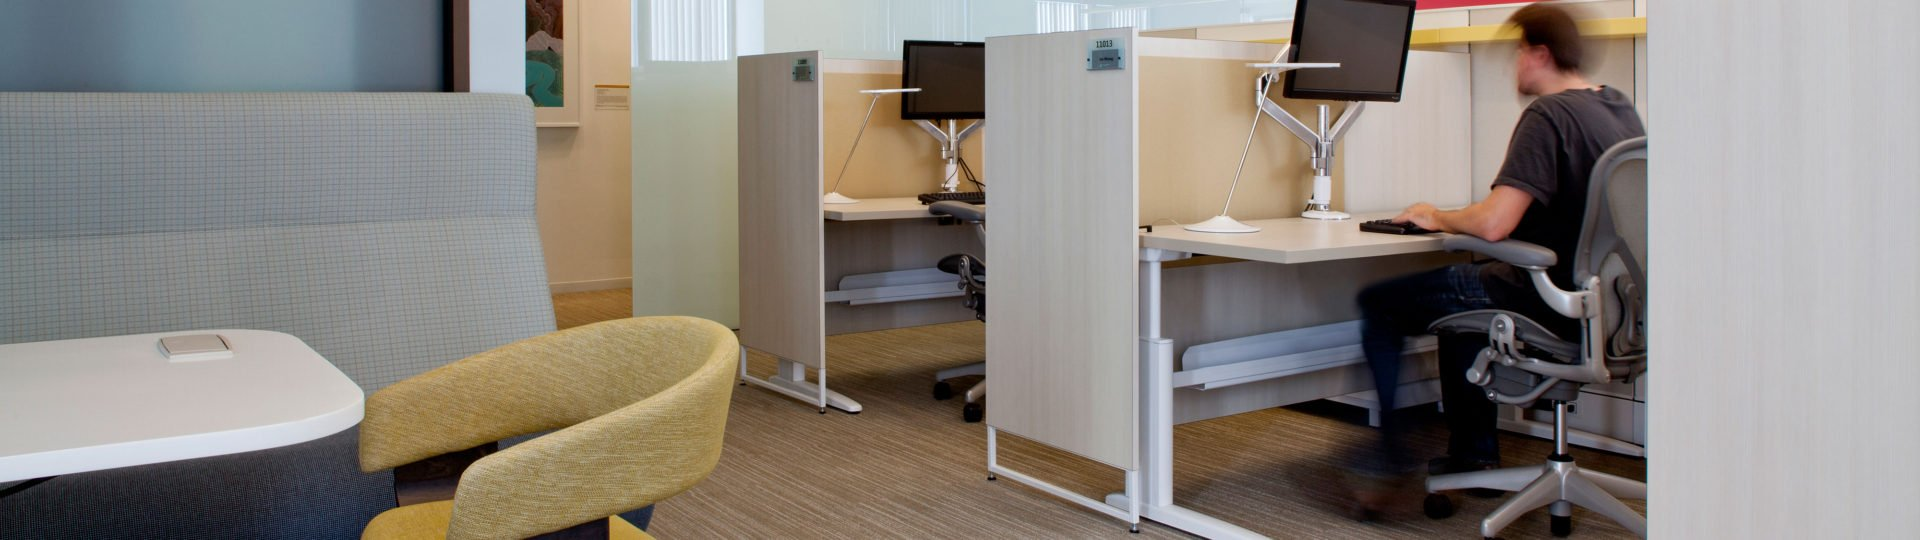 Unite cubicle desk systems by KI